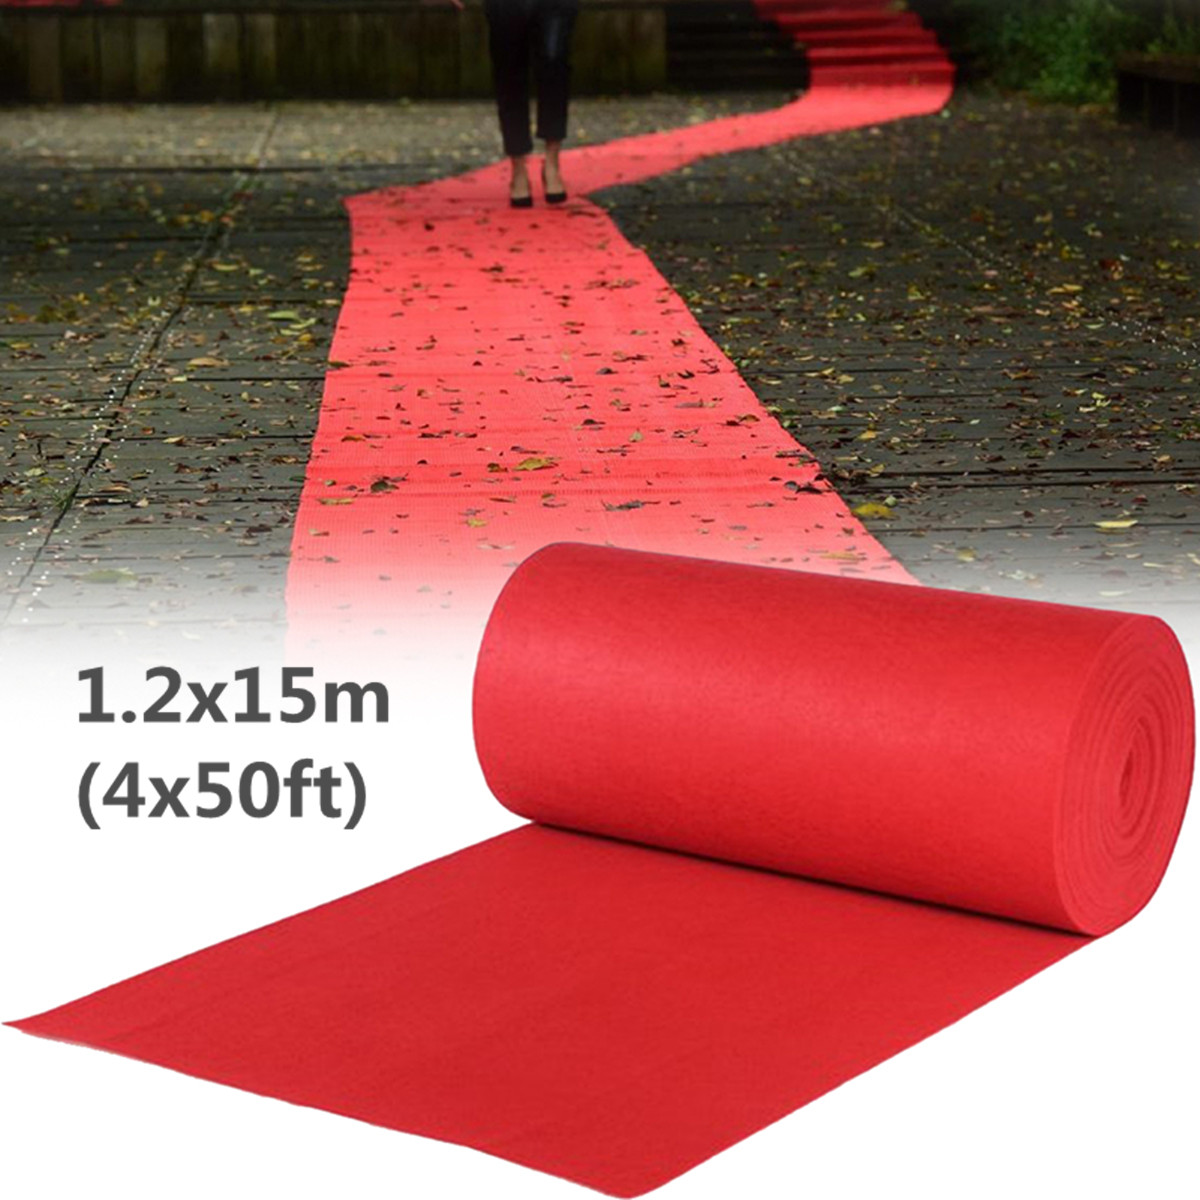 15X1.2M Wedding Aisle Floor Runner Carpet Polyester Large Carpet Rug Hollywood Awards Events Party Wedding Events Decoration15X1.2M Wedding Aisle Floor Runner Carpet Polyester Large Carpet Rug Hollywood Awards Events Party Wedding Events Decoration